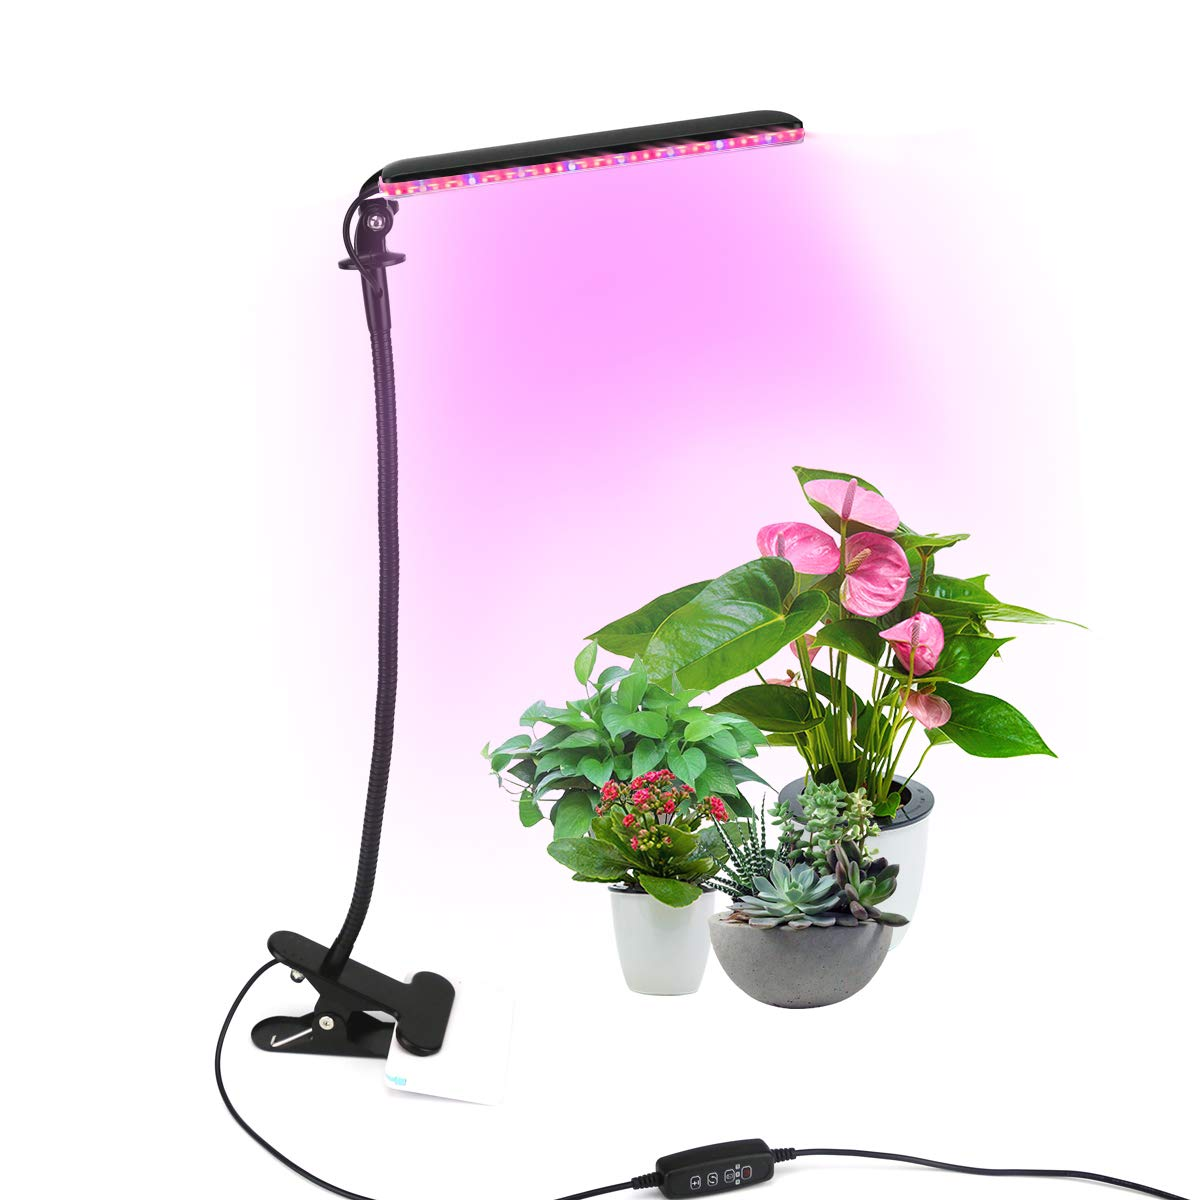 TOPK Plant Light, 24W 48 LED Grow Lamp with Red/Blue Spectrum for Indoor Plants Flexible Adjustable Gooseneck 3/6/12H Timer 5 Dimmable Levels Plant Grow Light Bulb